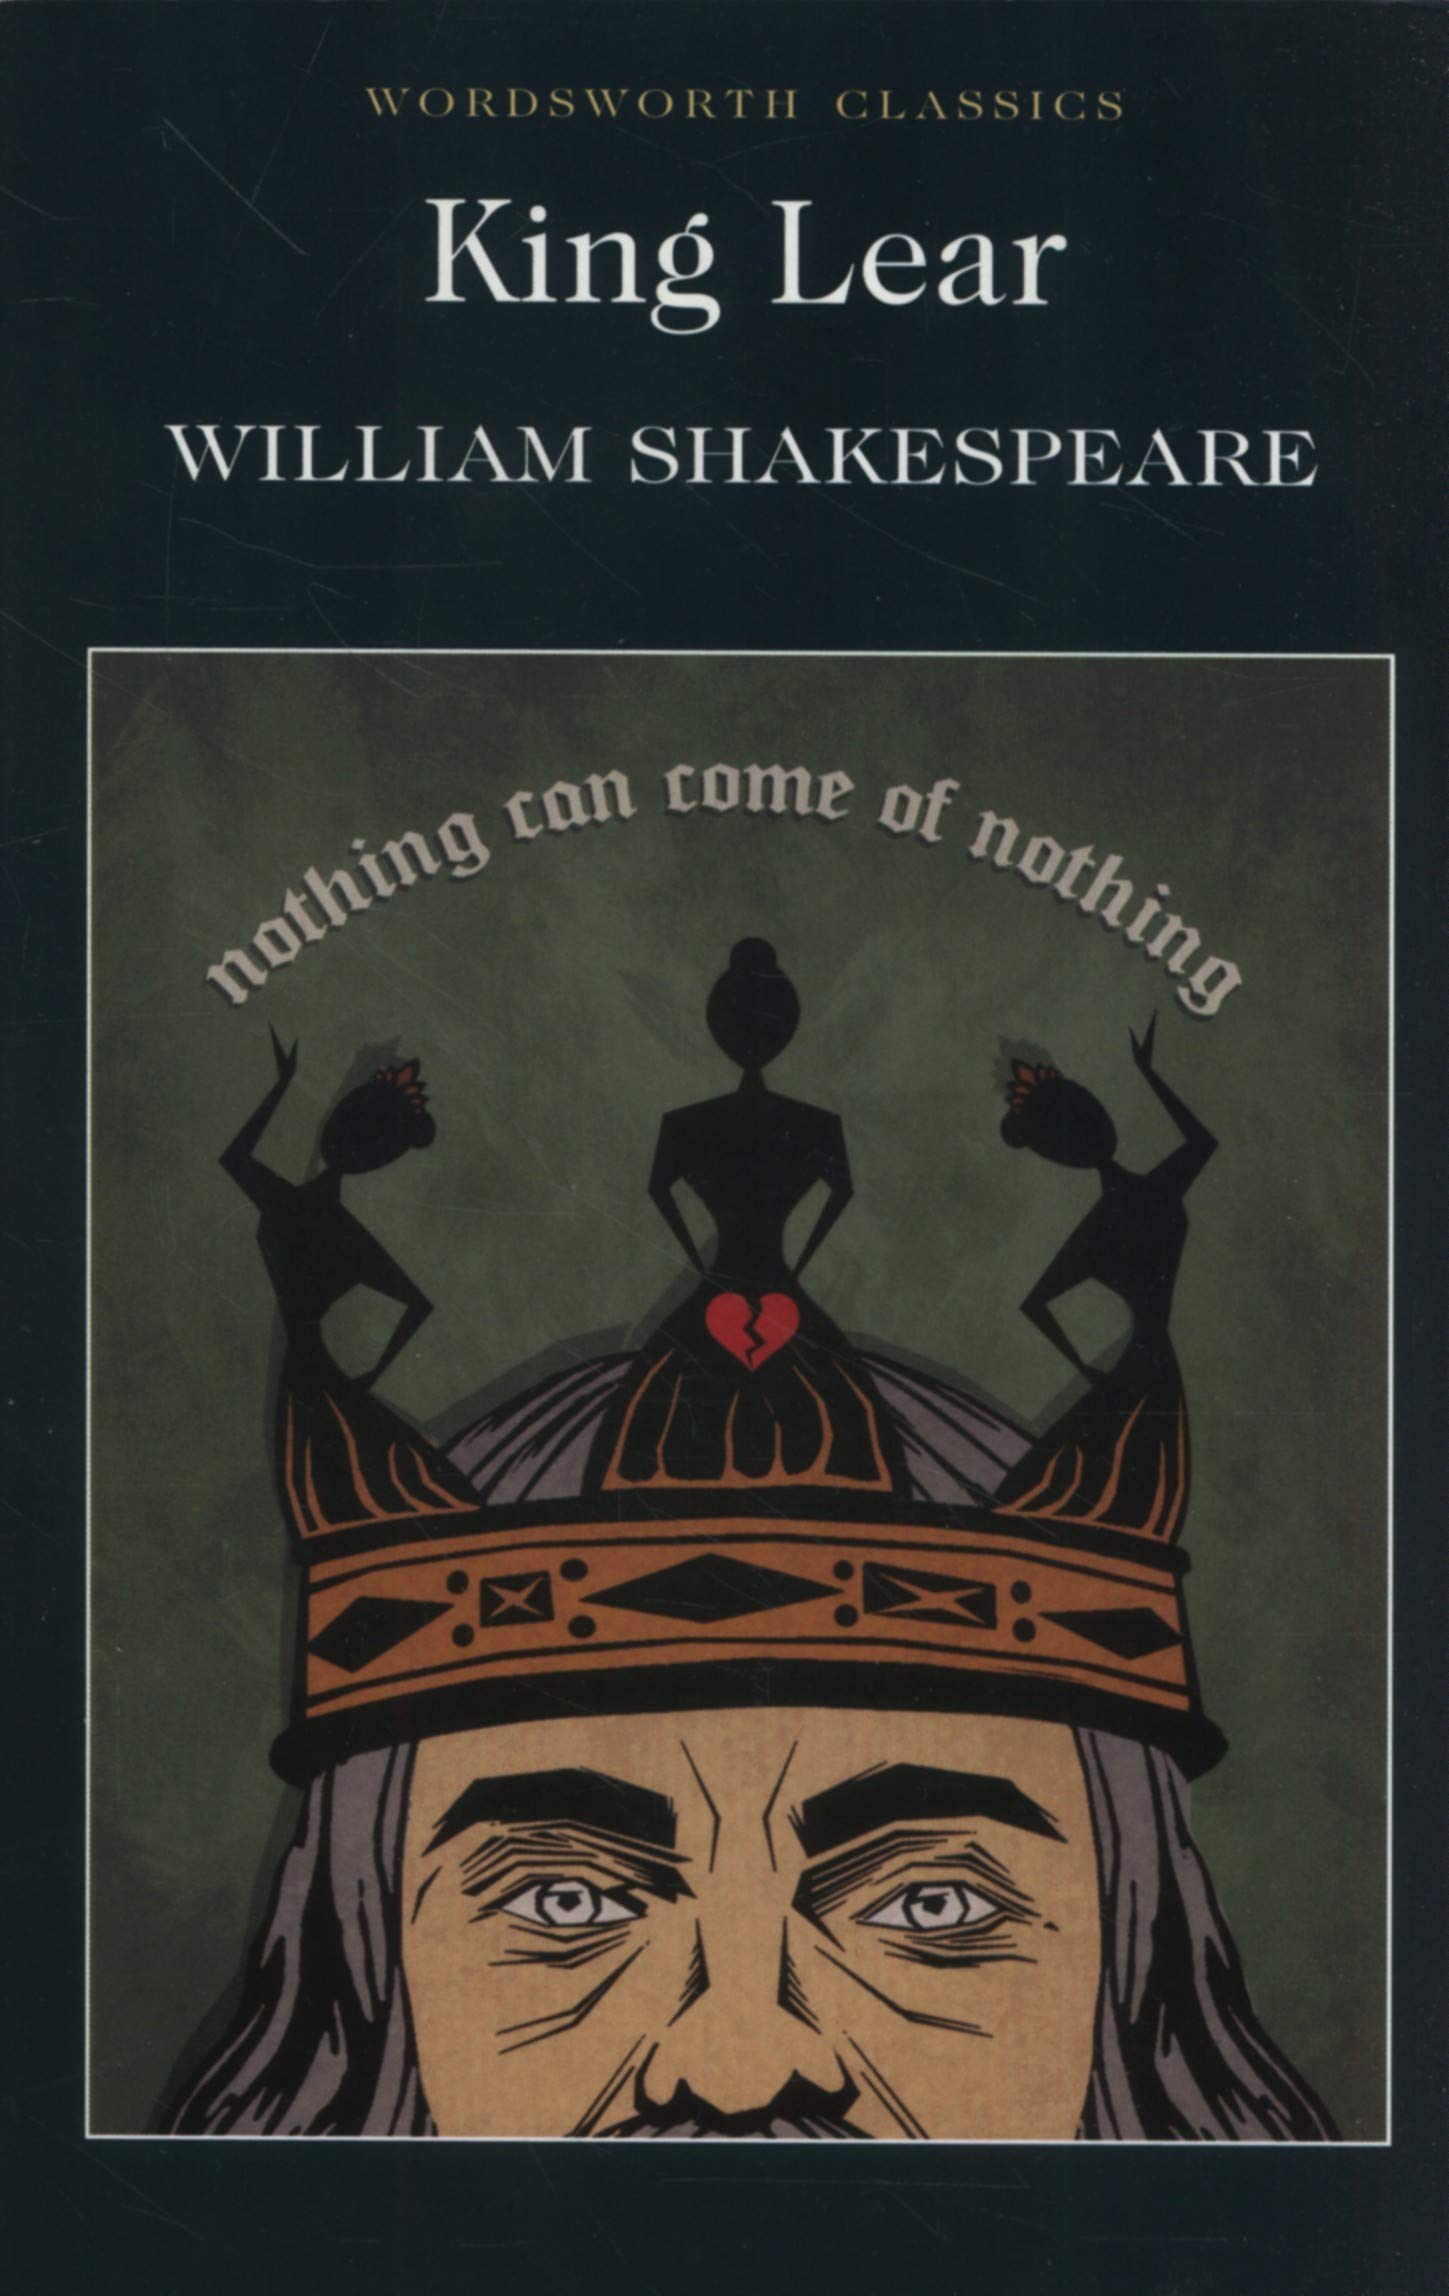 King Lear (Wordsworth Classics): Amazon.co.uk: William Shakespeare,  Professor Cedric Watts M.A. Ph.D., Dr Keith Carabine: 9781853260957: Books